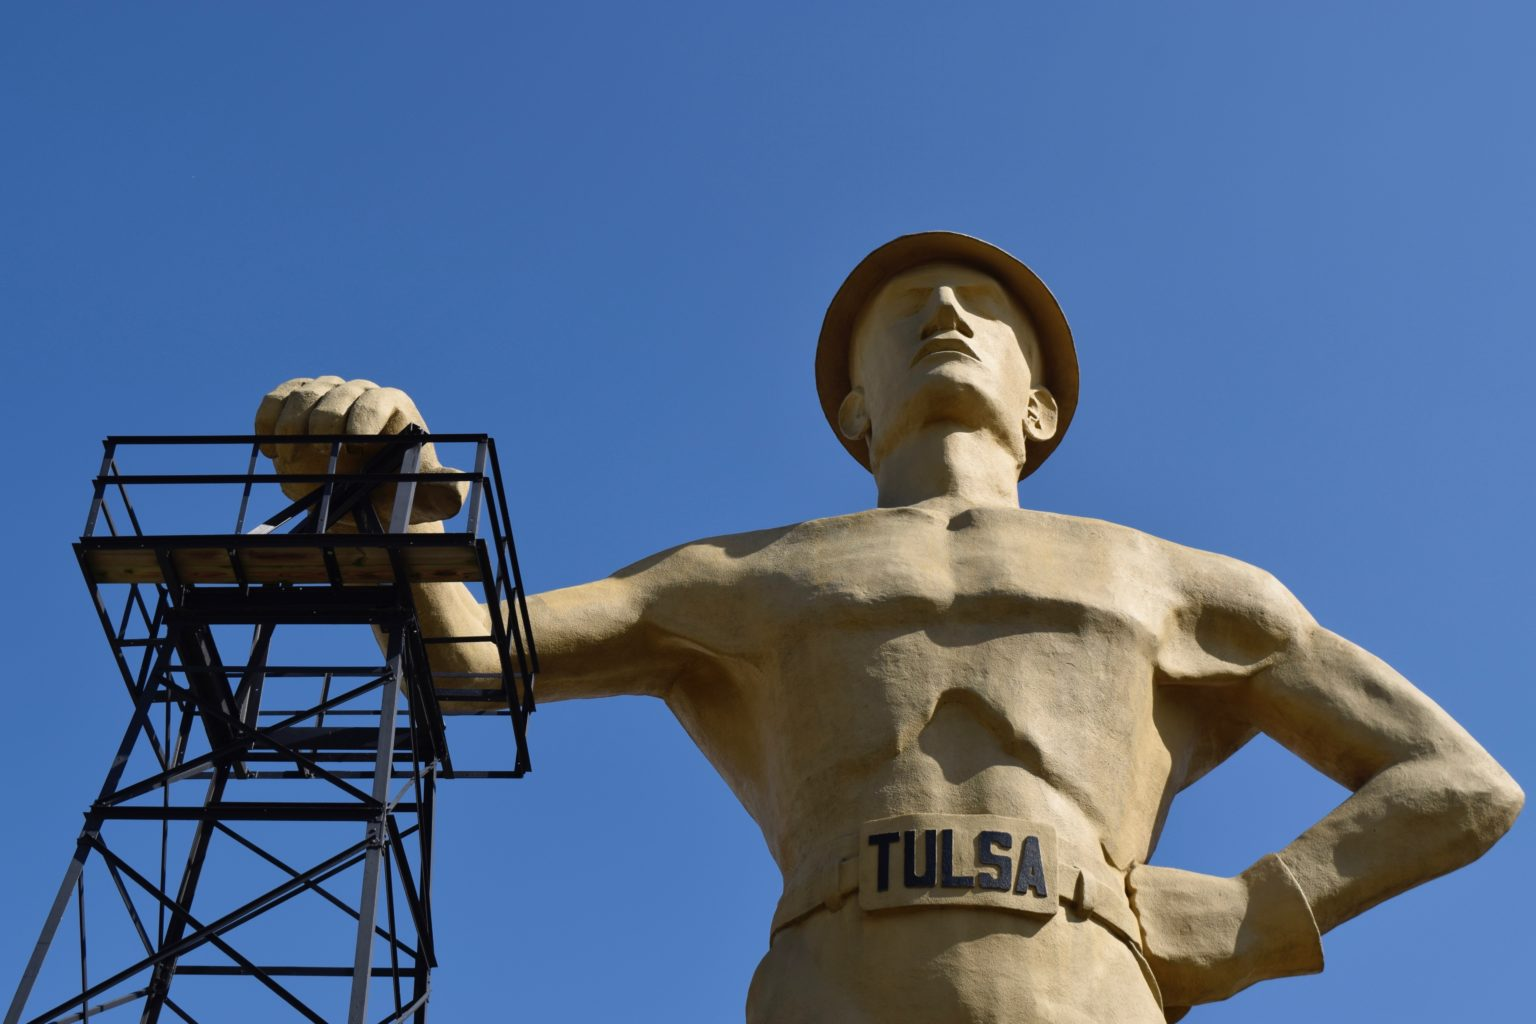 Golden Driller, a popular free thing to do in Tulsa, Oklahoma